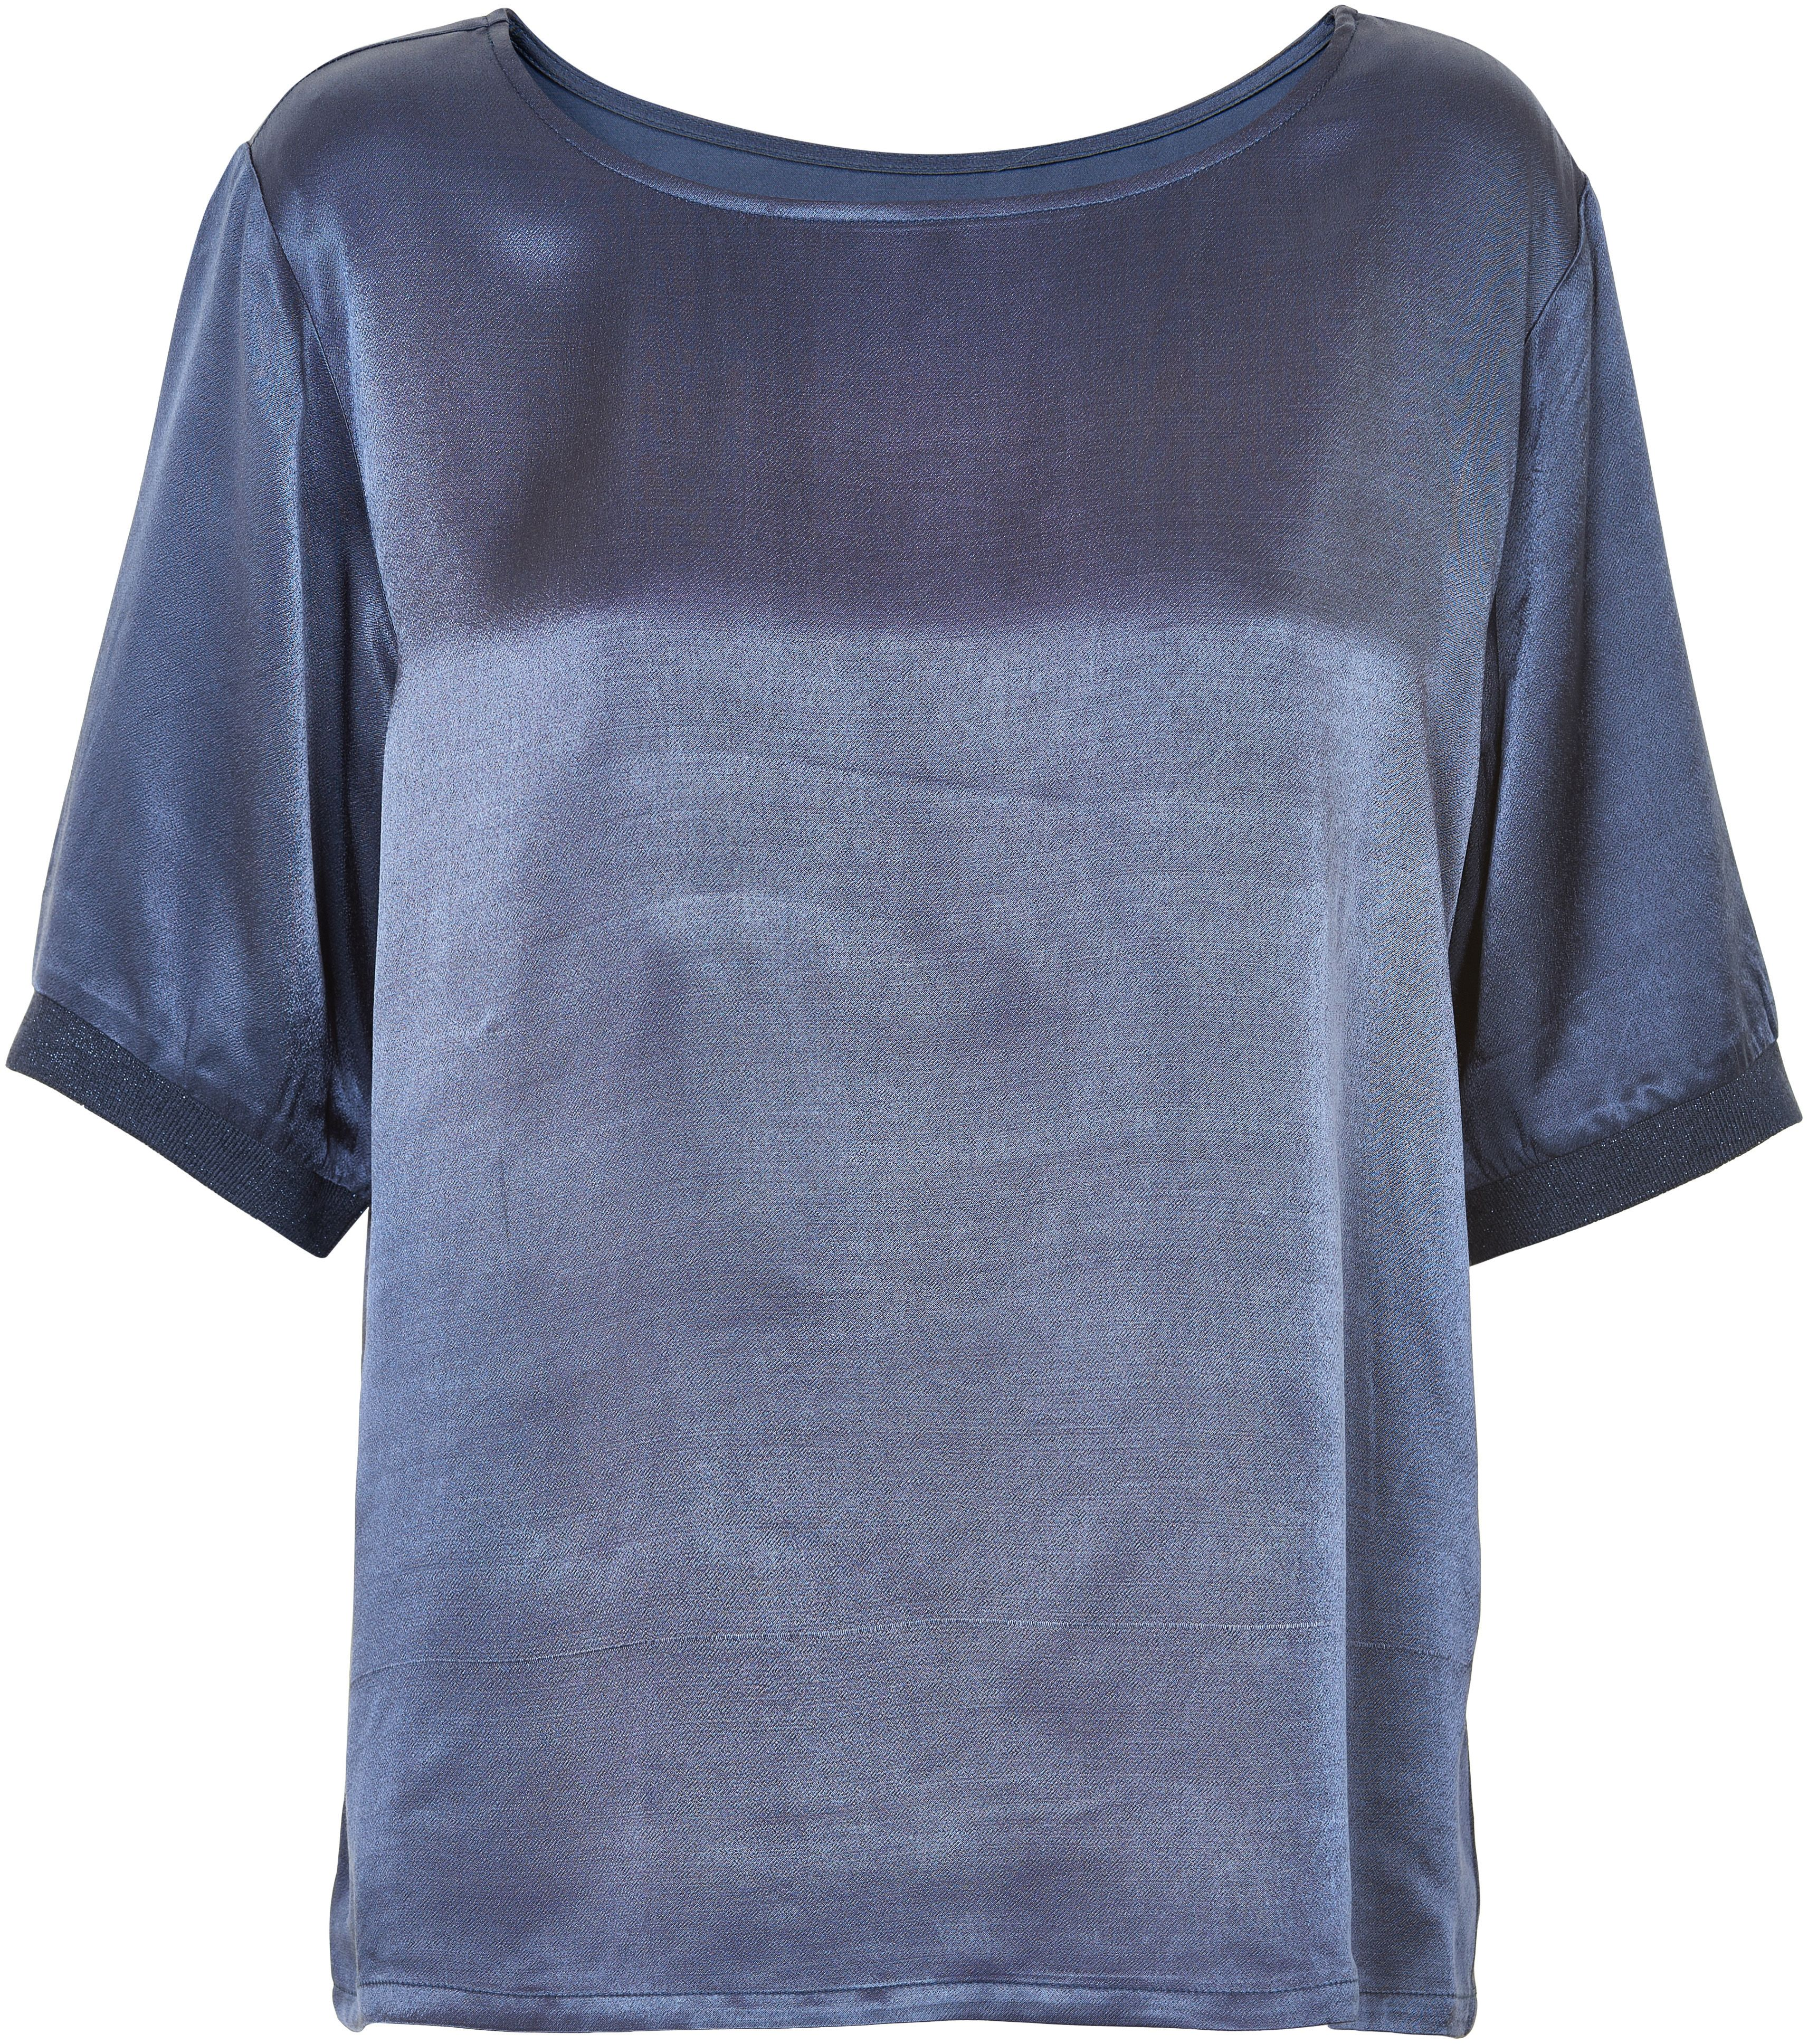 Soaked in Luxury Soaked in Luxury Metallic Oversized Top, Navy